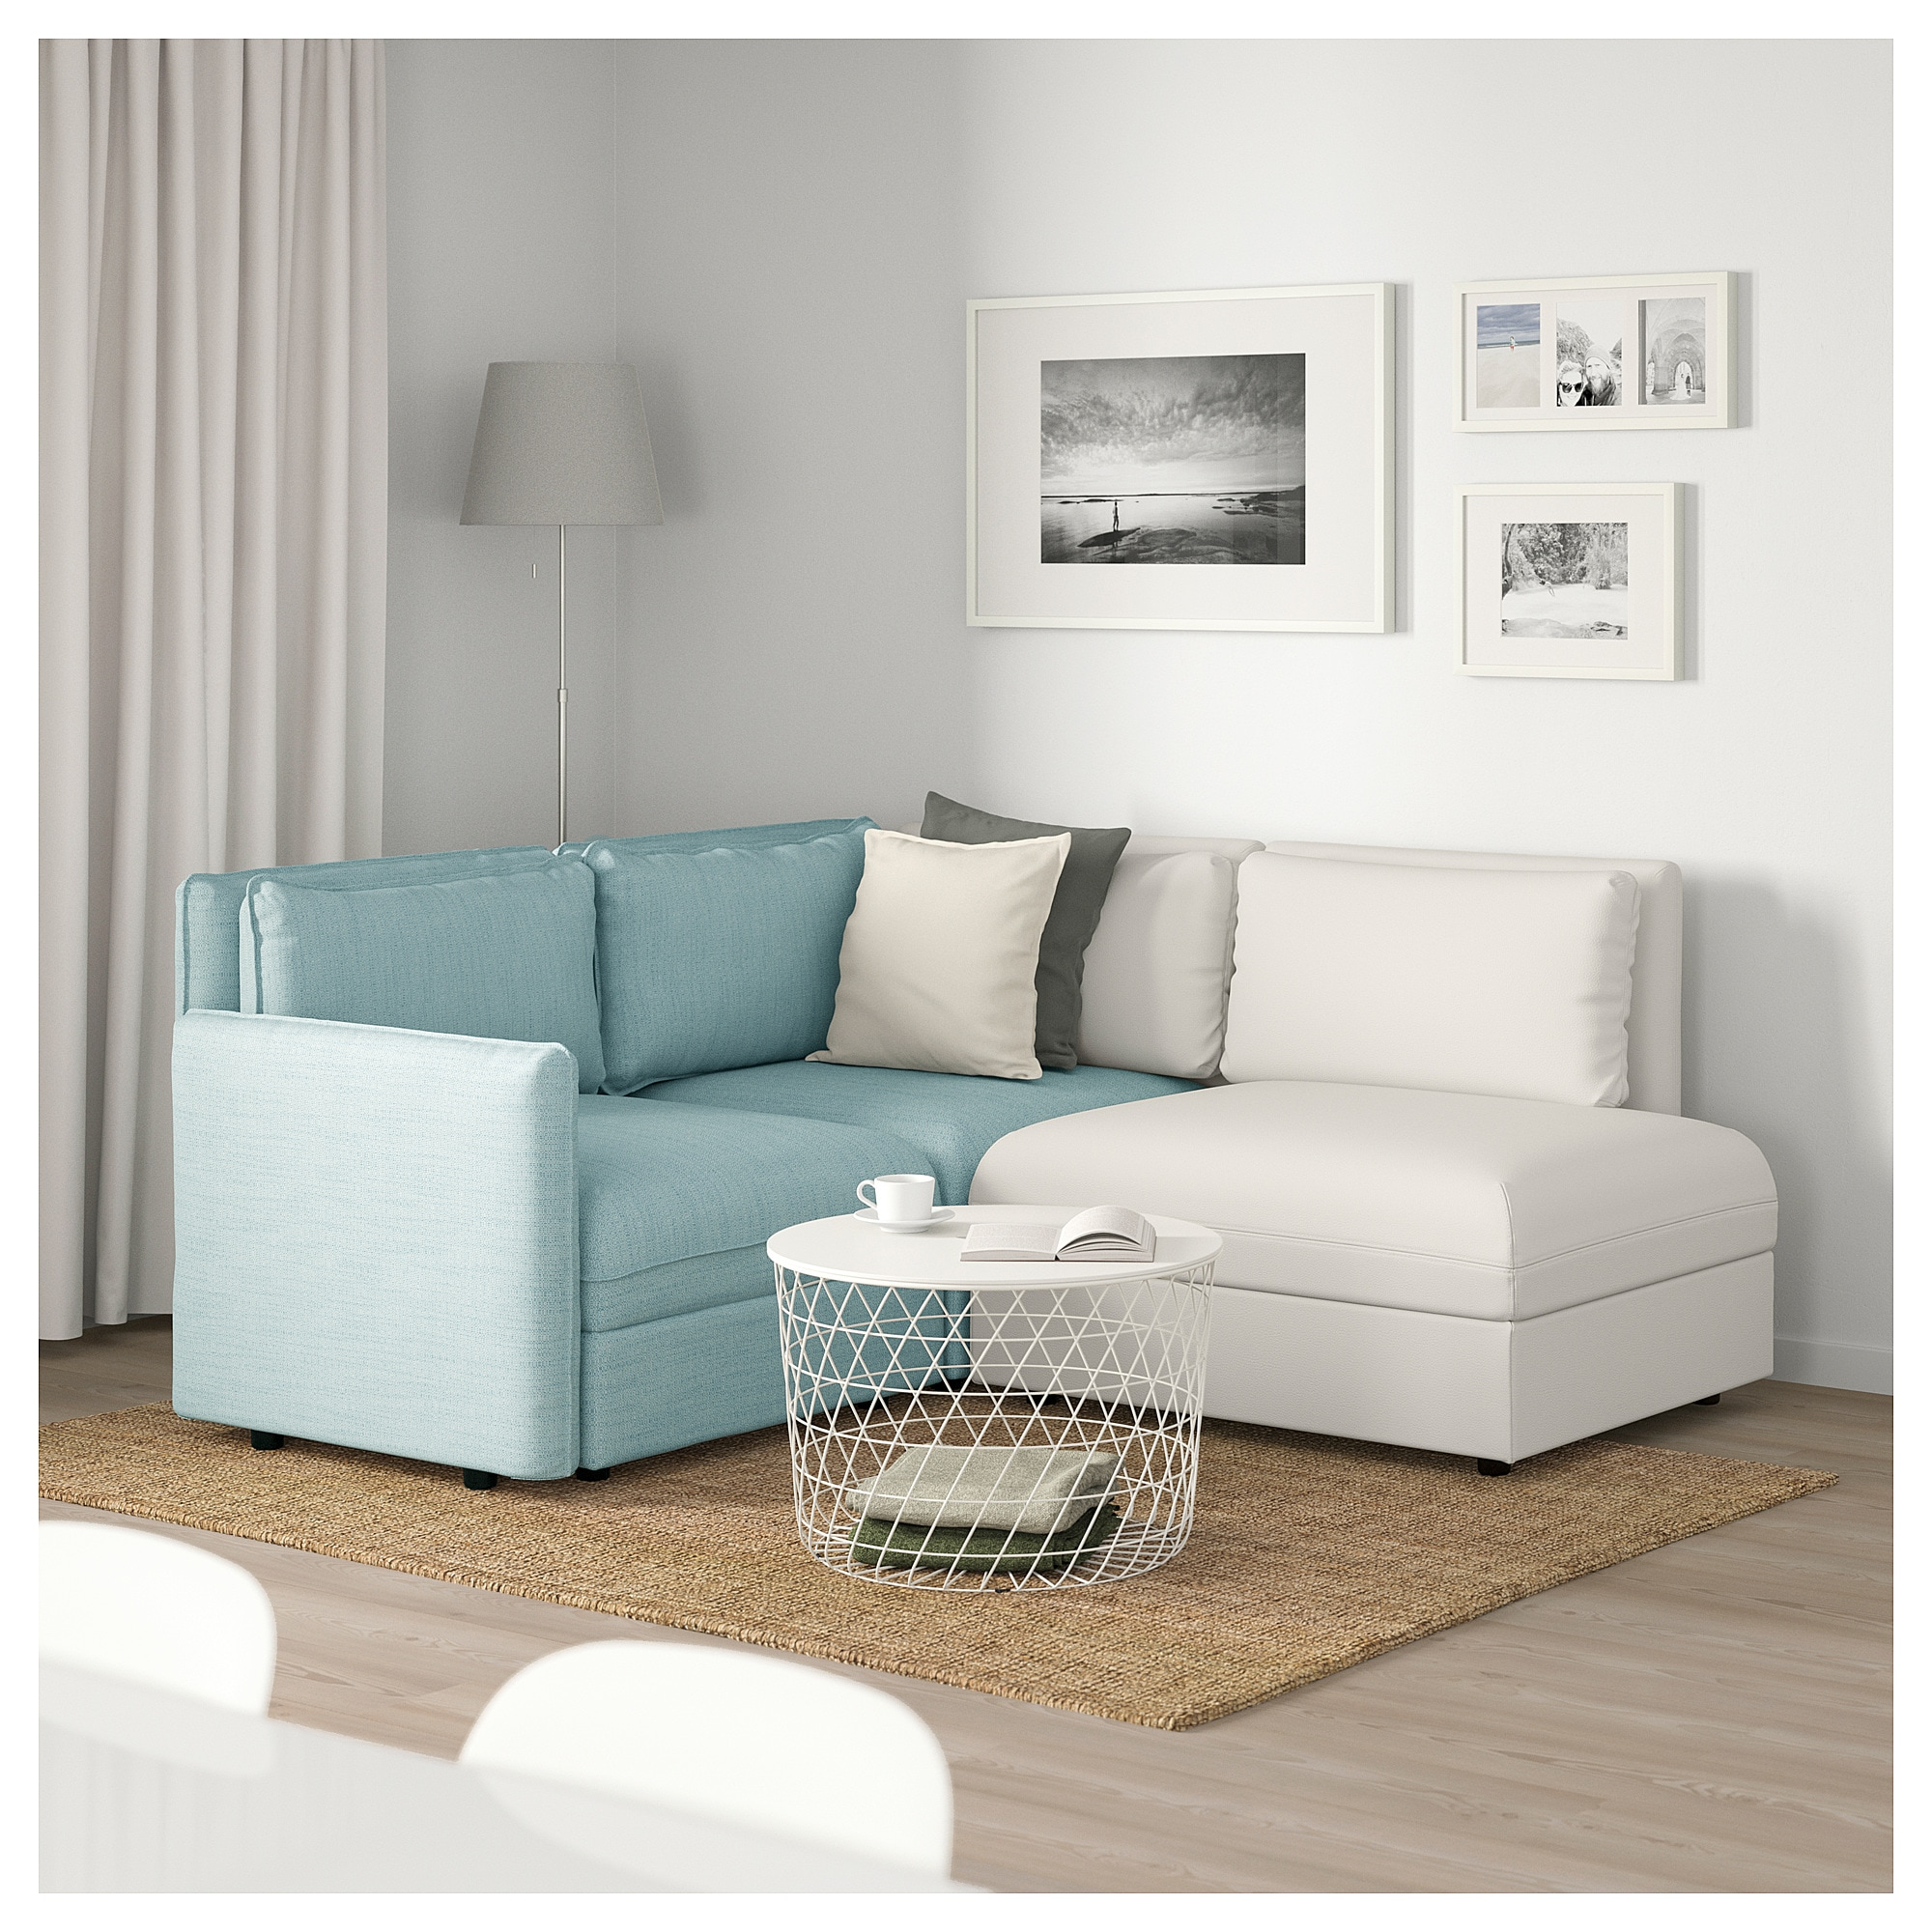 Vallentuna 3 Seat Modular Sofa With Storage Hillared - Ikea Sofa Quality